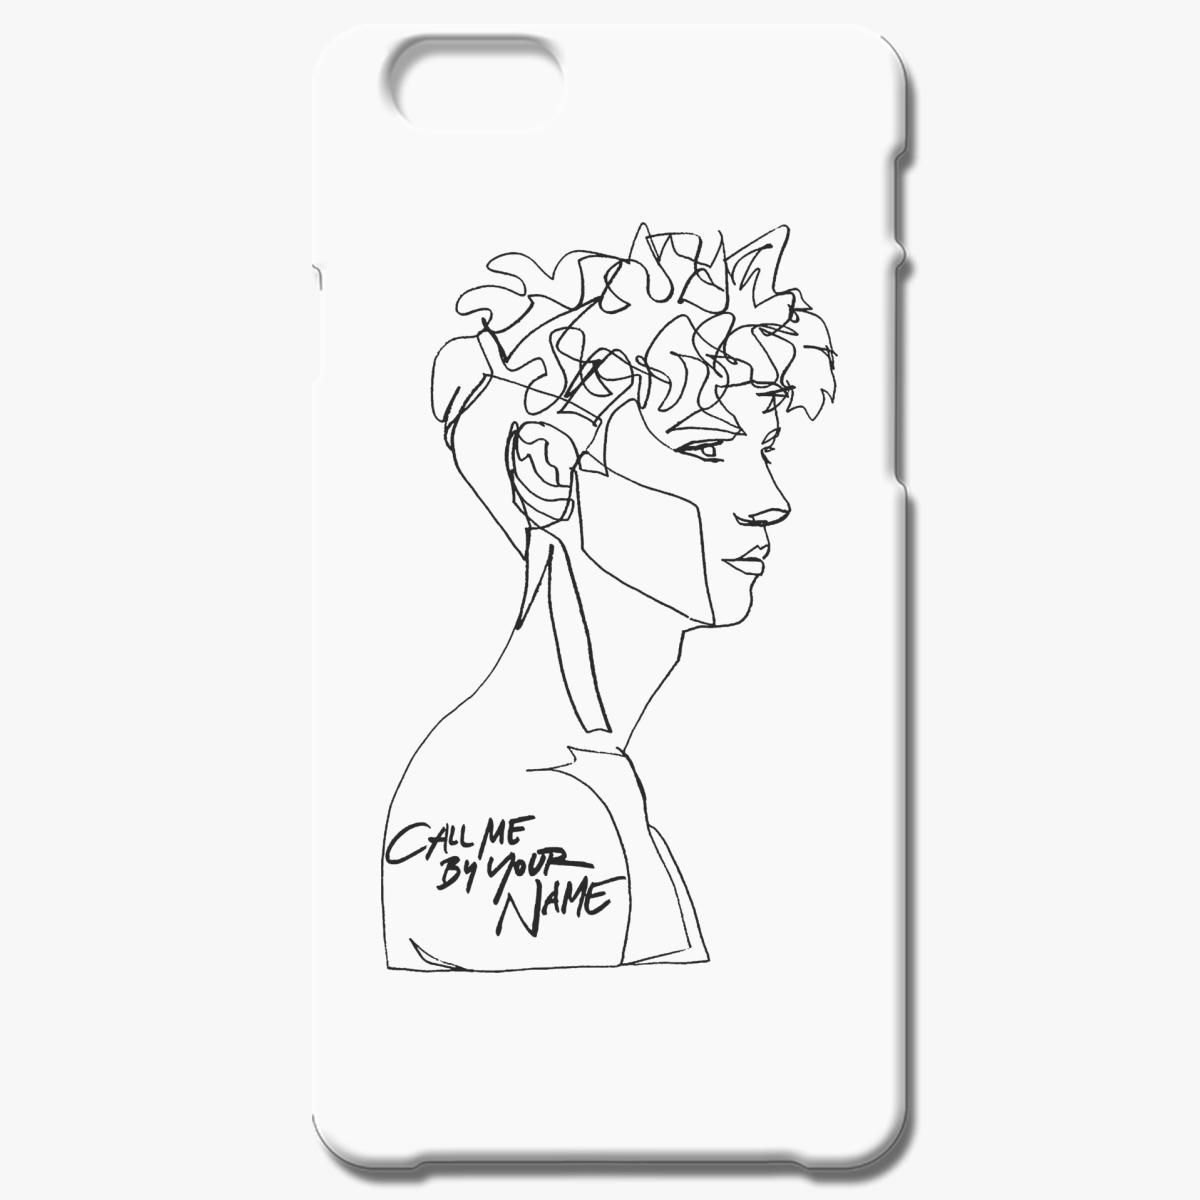 Elio And Oliver Call Me By Your Name Iphone 6 6s Case